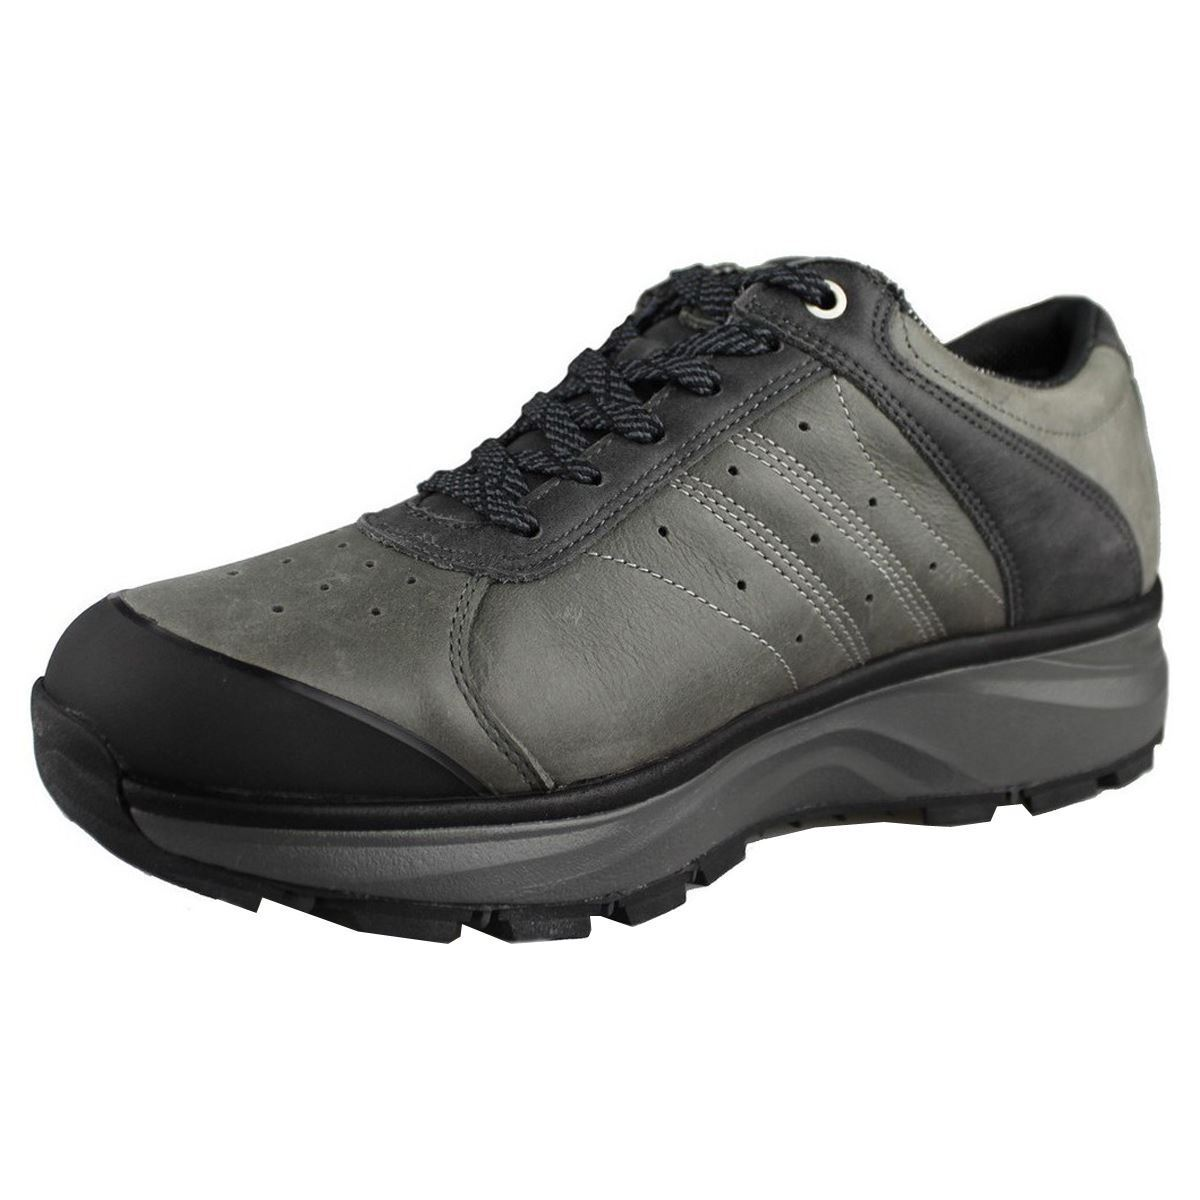 Joya Innsbruck Low Proof-Tex Stone Mens Healthy Lace Up Trainers New